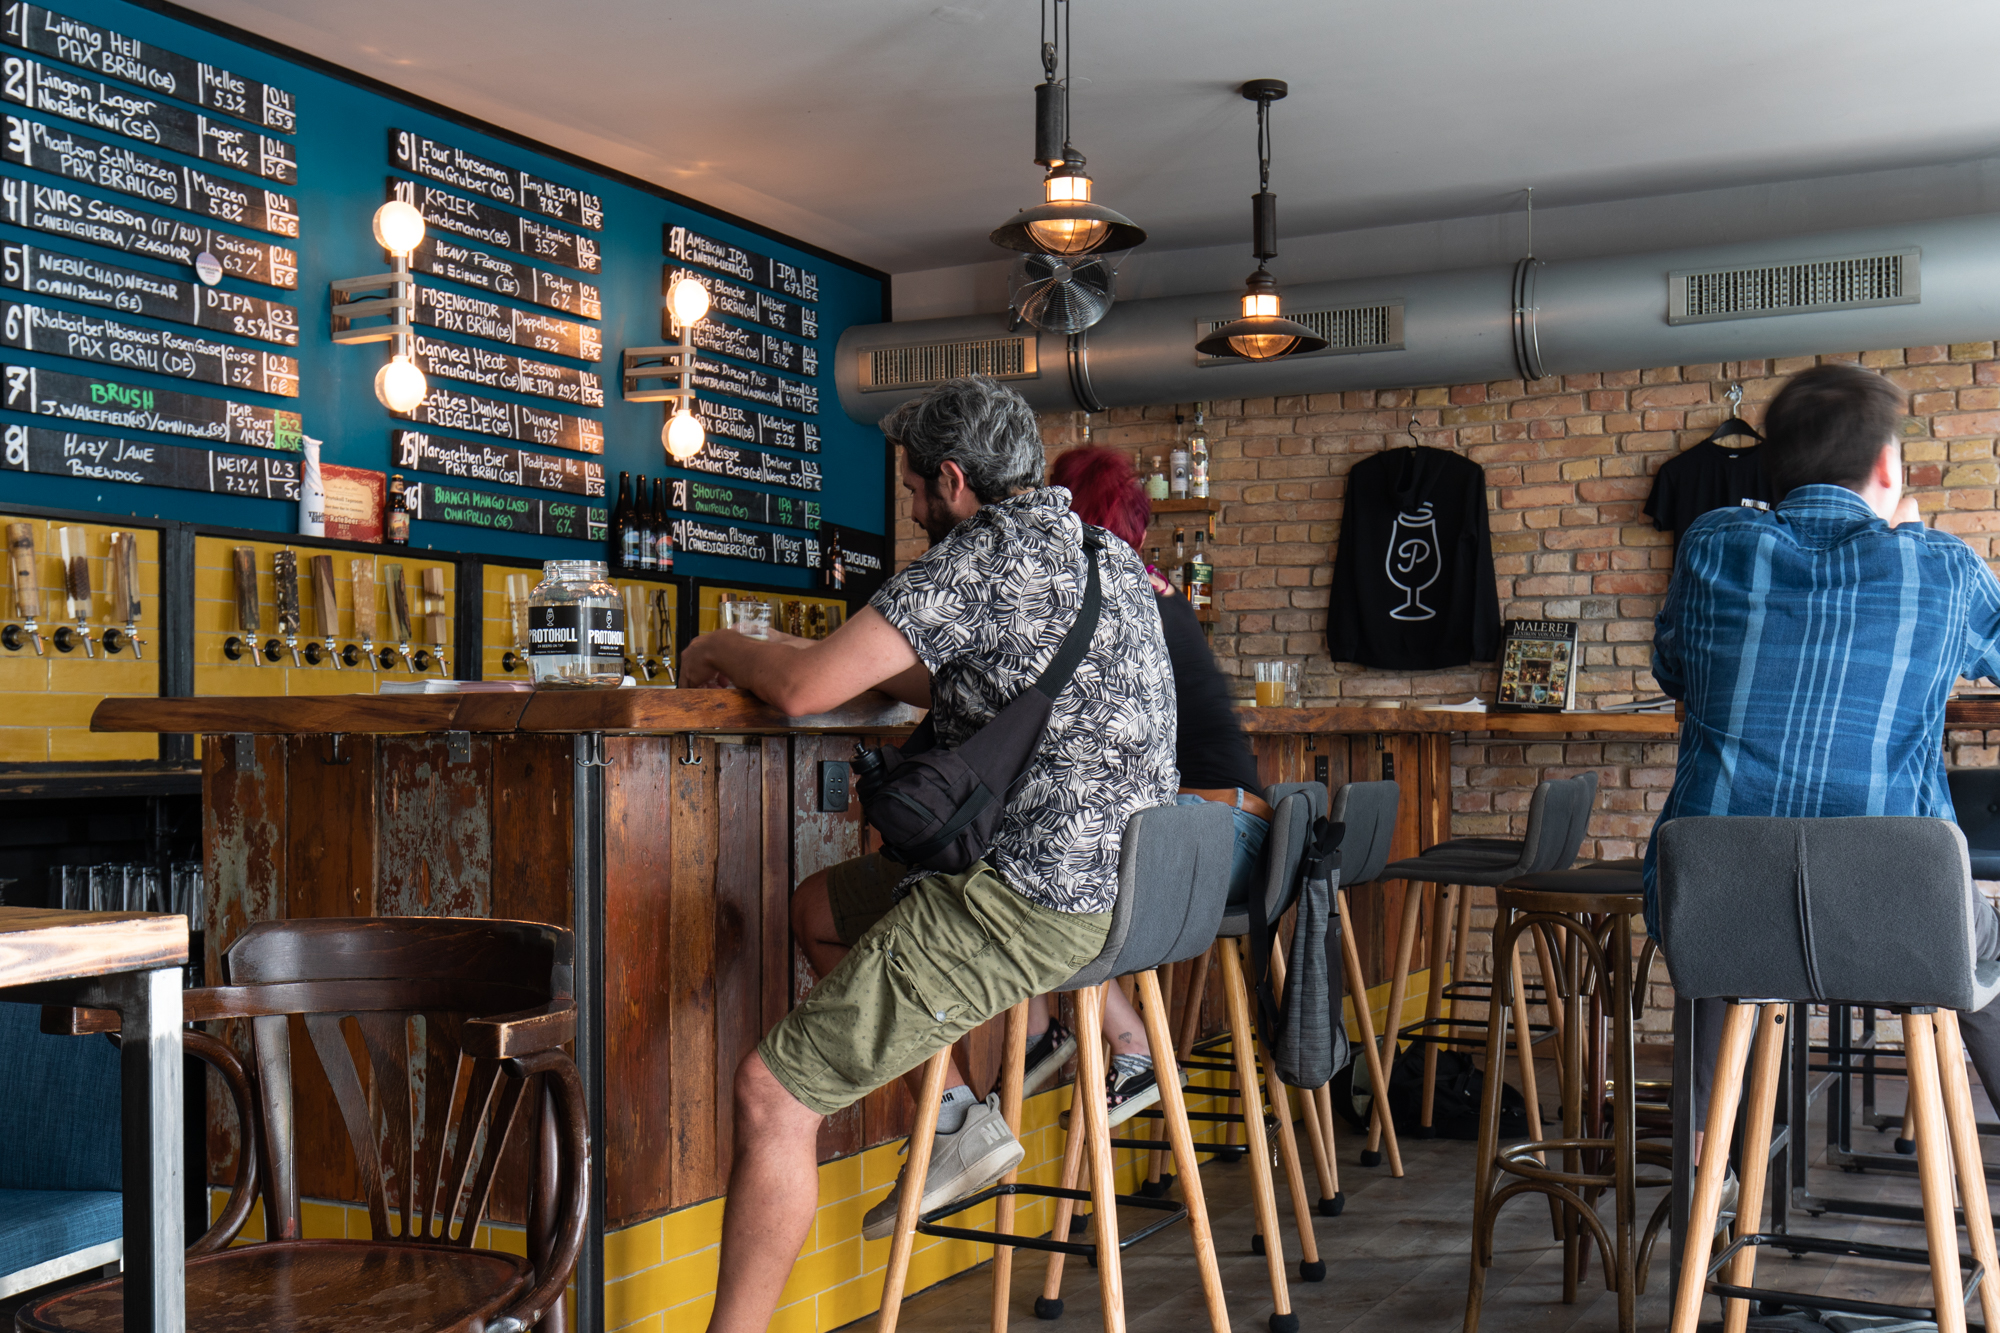 Protokoll Taproom Berlin, a craft beer bar with 24 taps in Berlin Friedrichshain